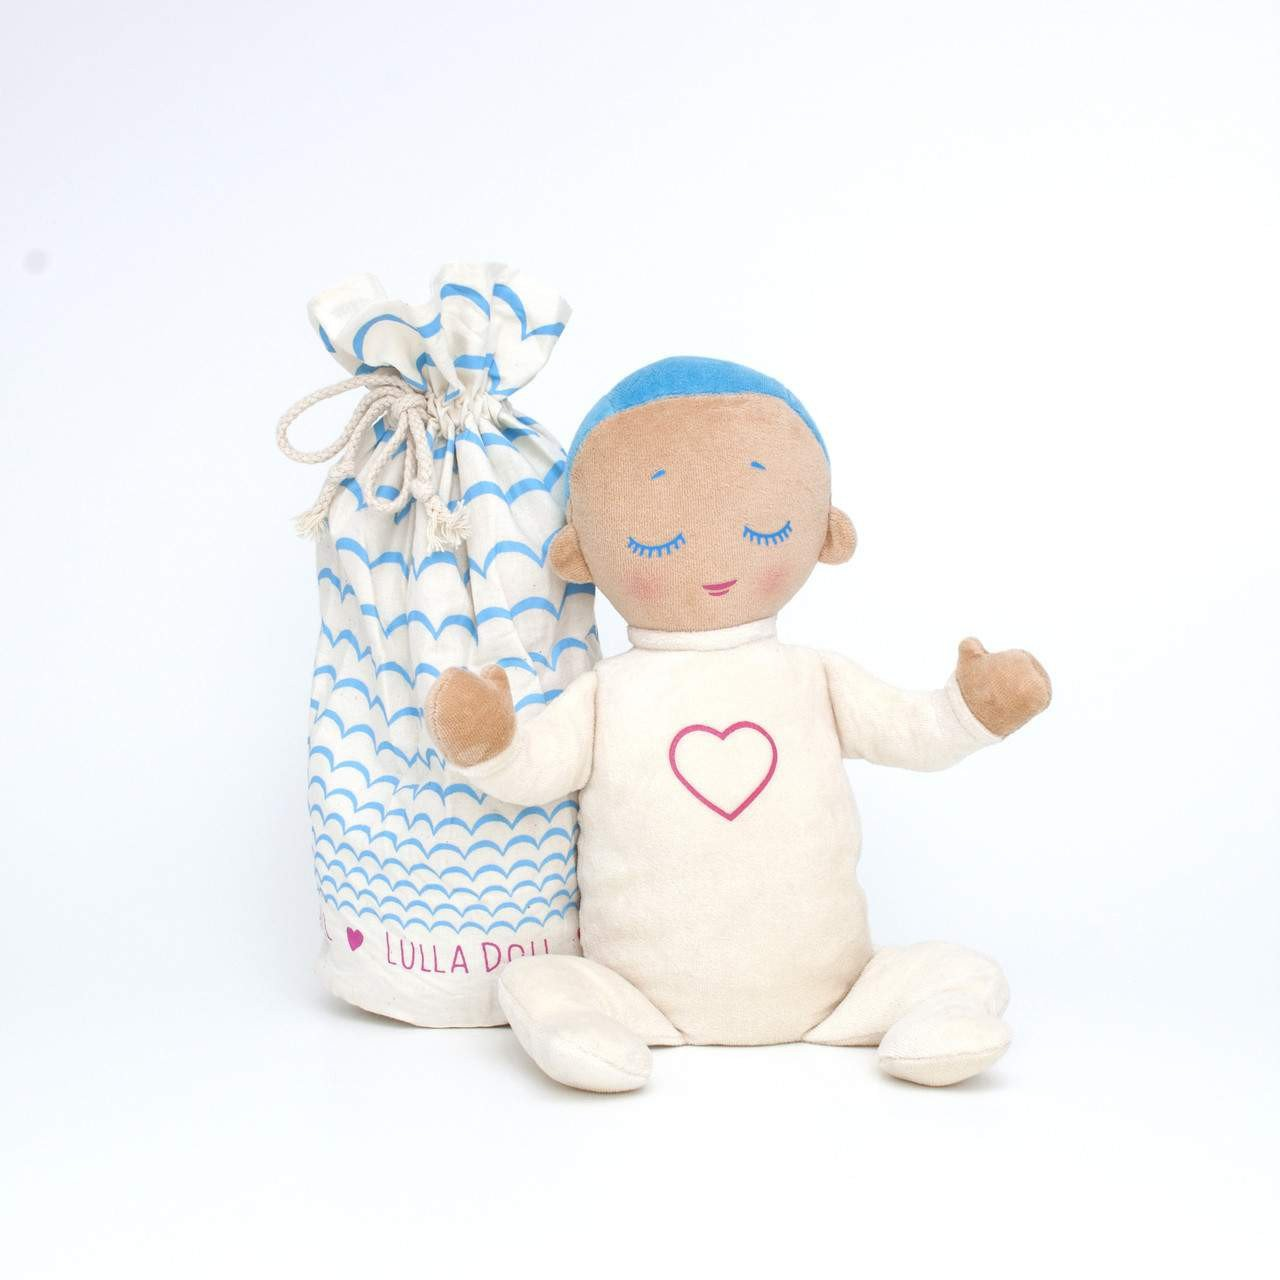 Lulla Doll Sleep Companion - Baby Prestige UK